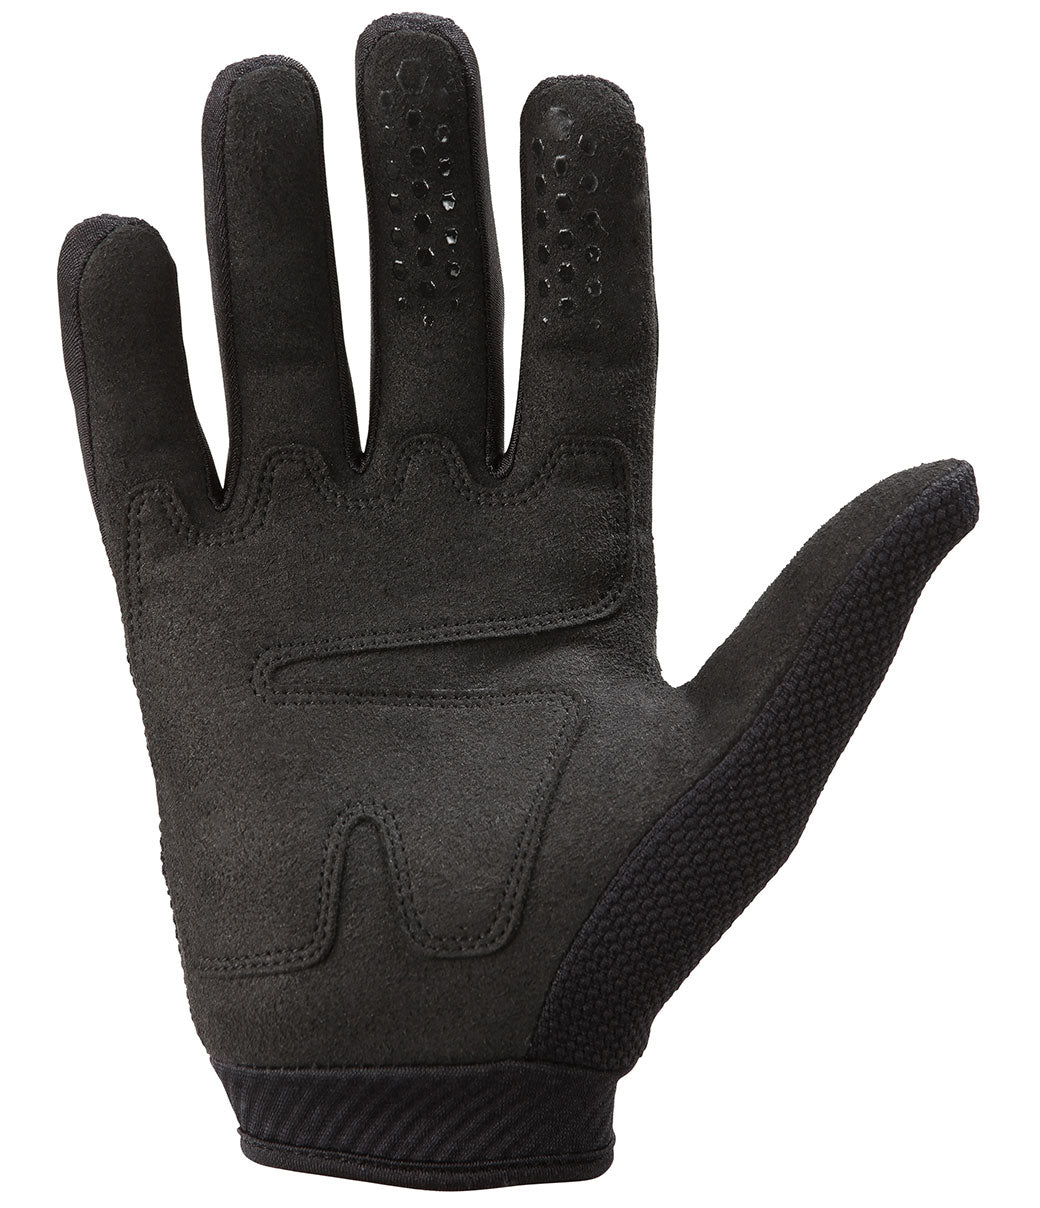 Rival Gloves - Black